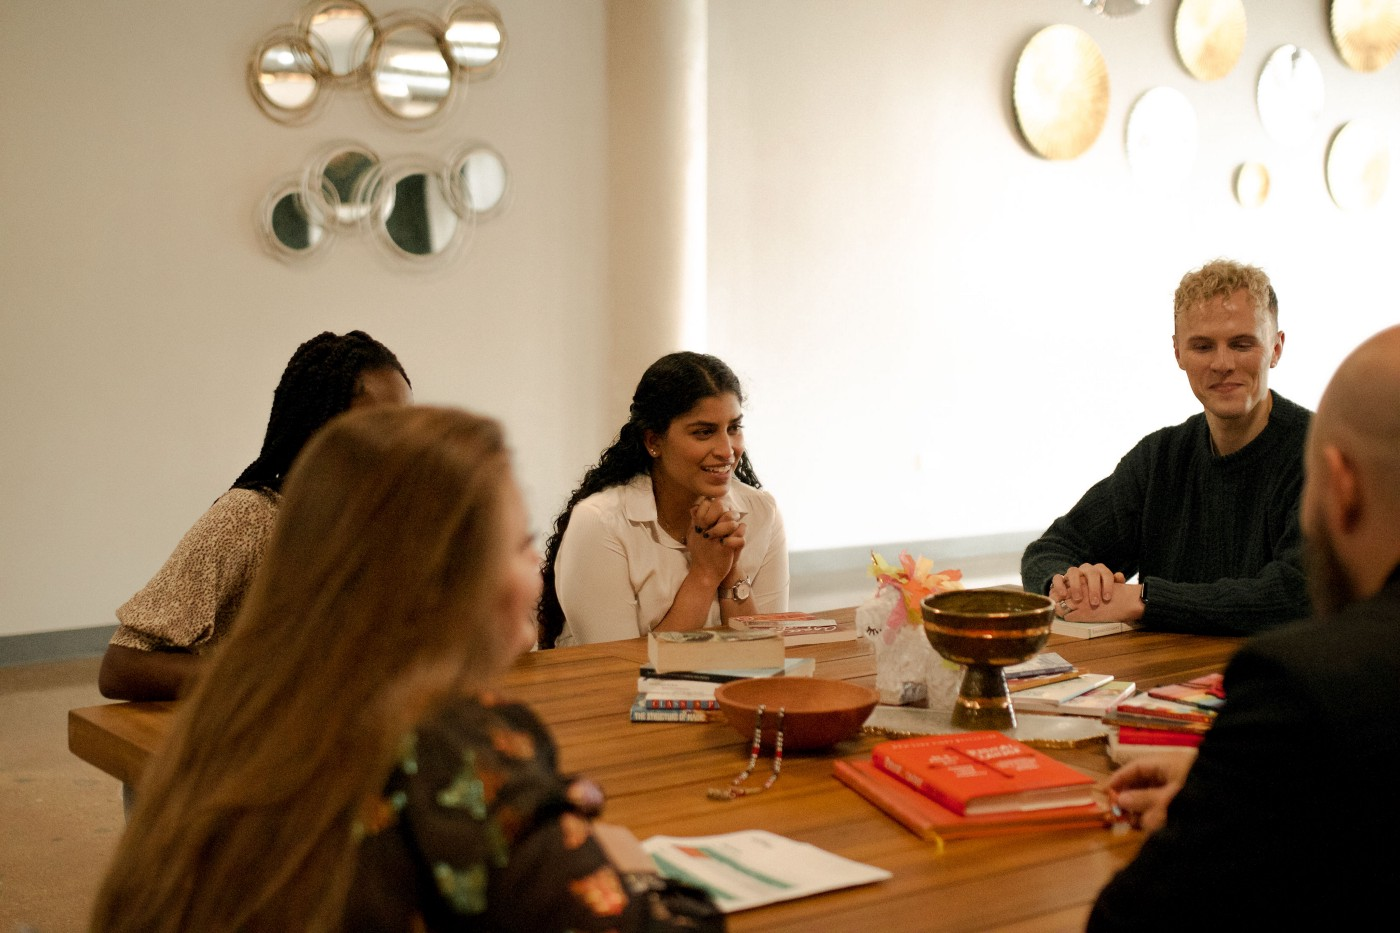 A group of five employees sit around a wooden meeting table talking, smiling, and laughing.